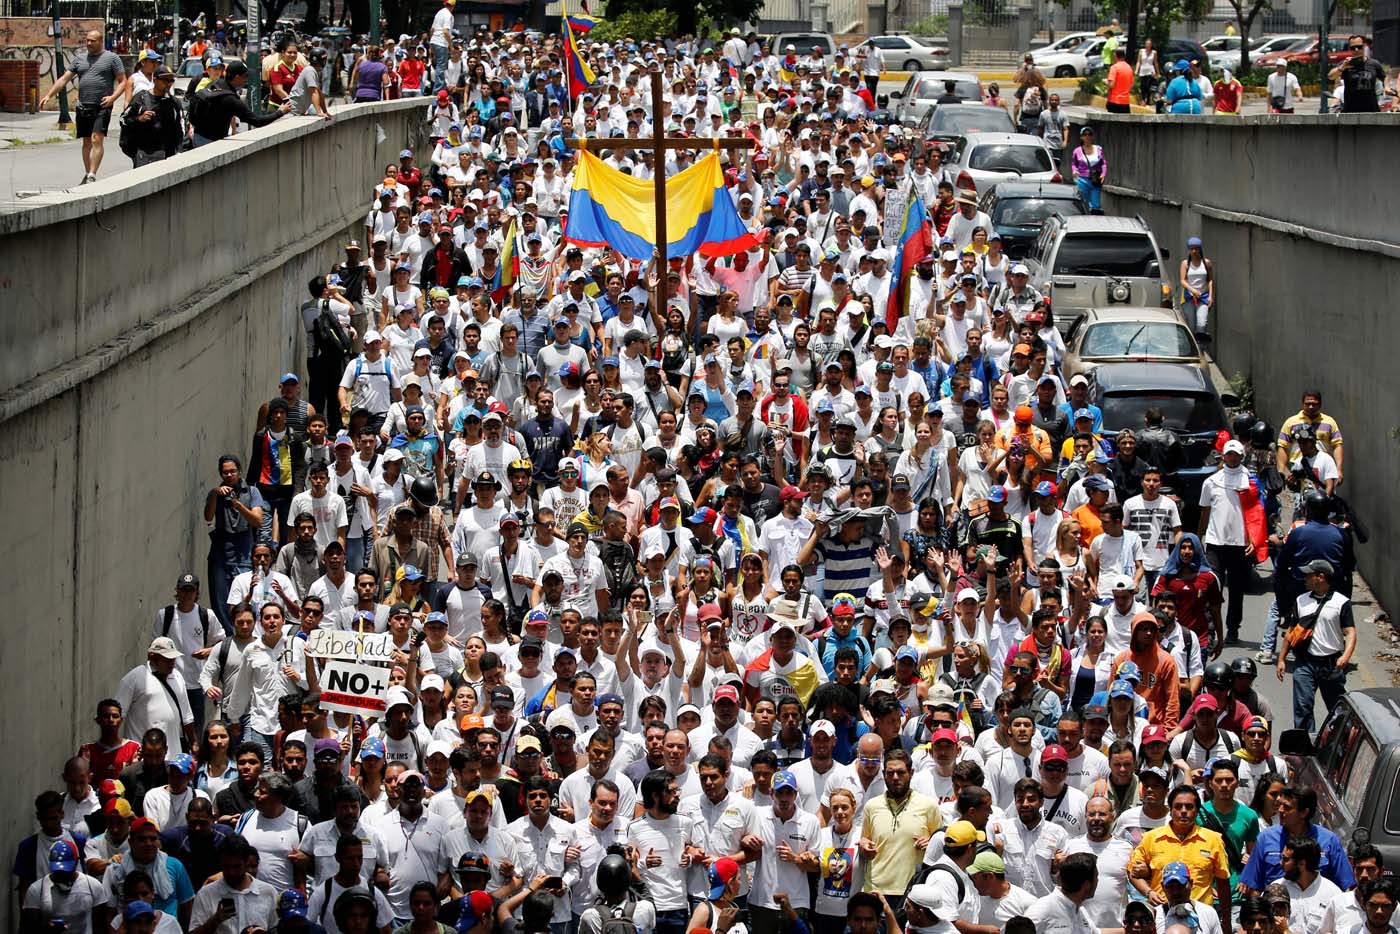 Demonstrators take part in a rally to honour victims of violence during a protest against Venezuela's President Nicolas Maduro's government in Caracas, Venezuela, April 22, 2017. REUTERS/Carlos Garcia Rawlins